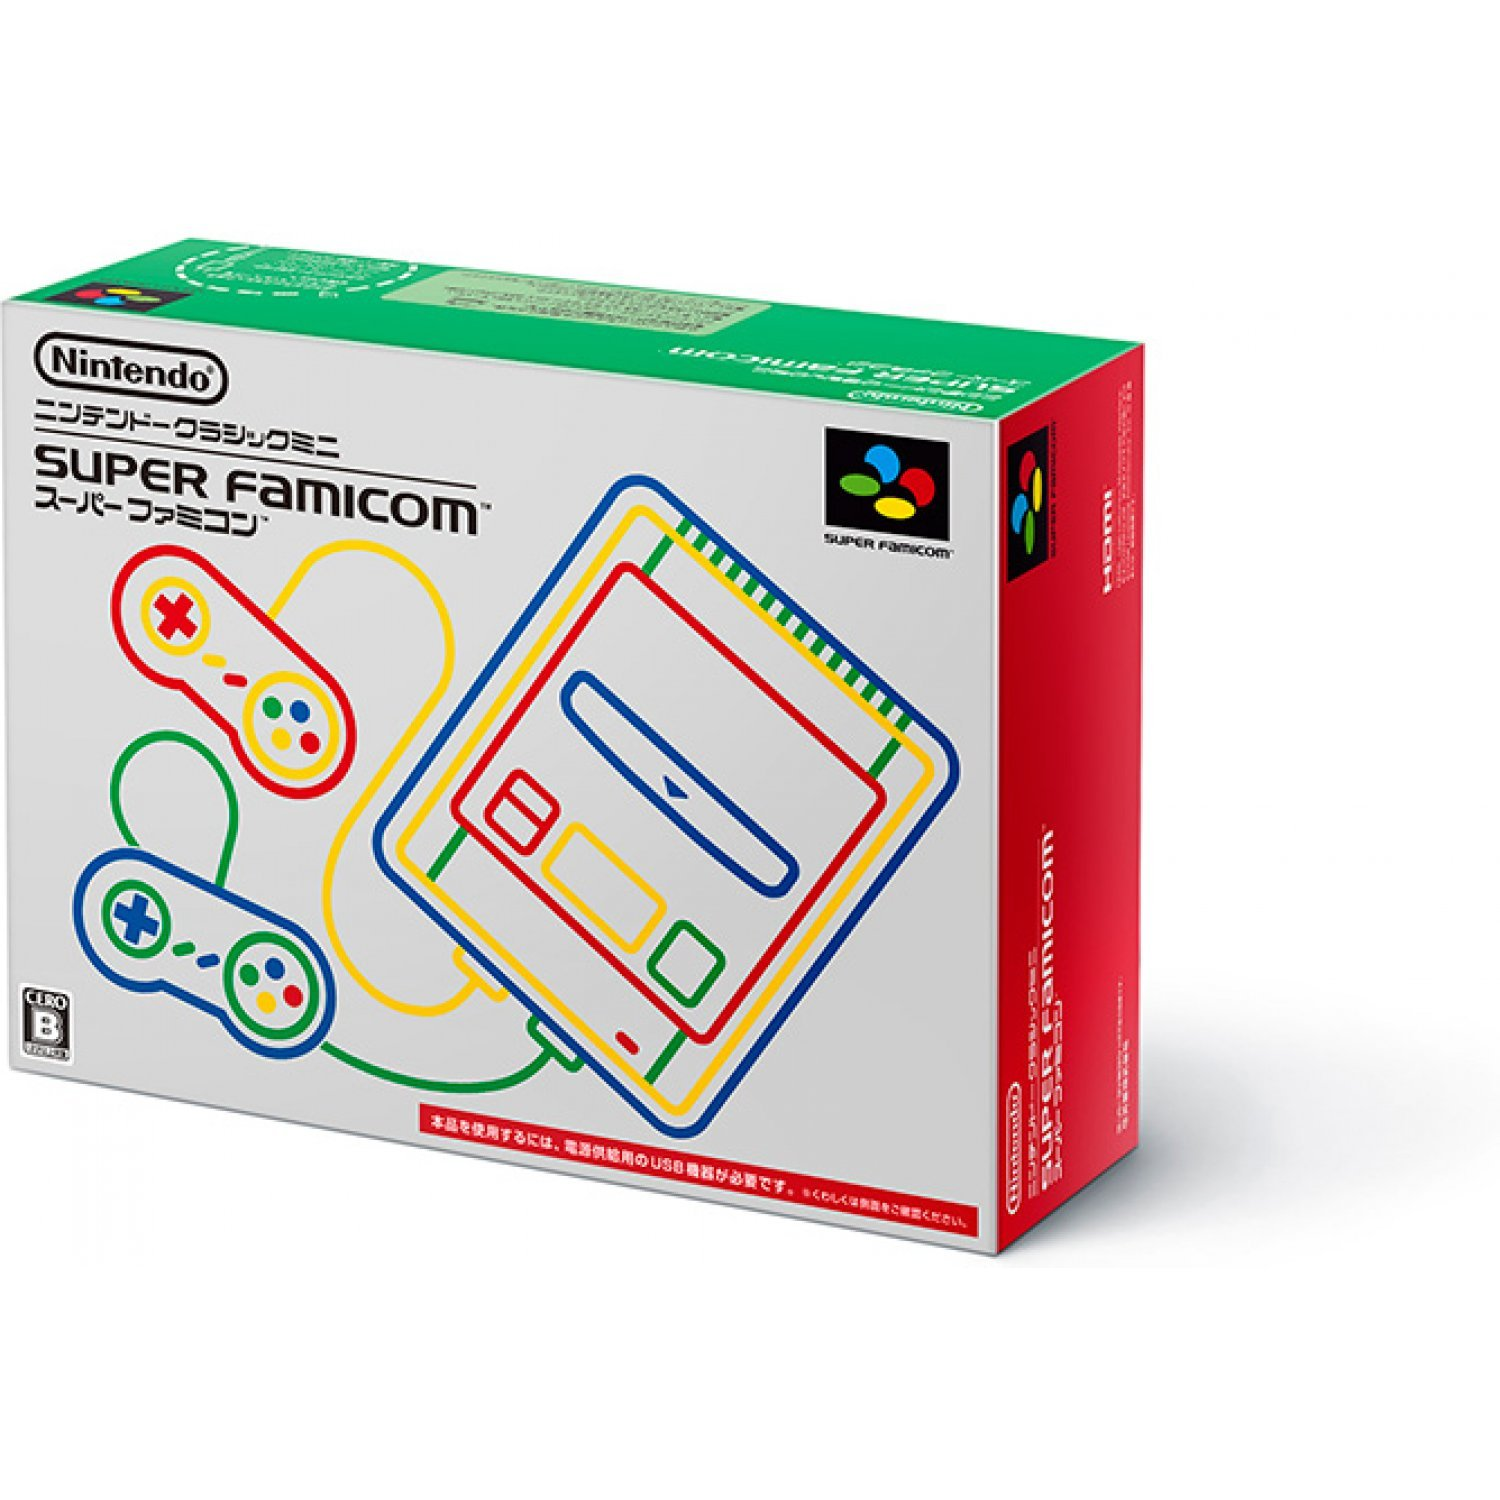 nintendo classic mini super famicom. Black Bedroom Furniture Sets. Home Design Ideas